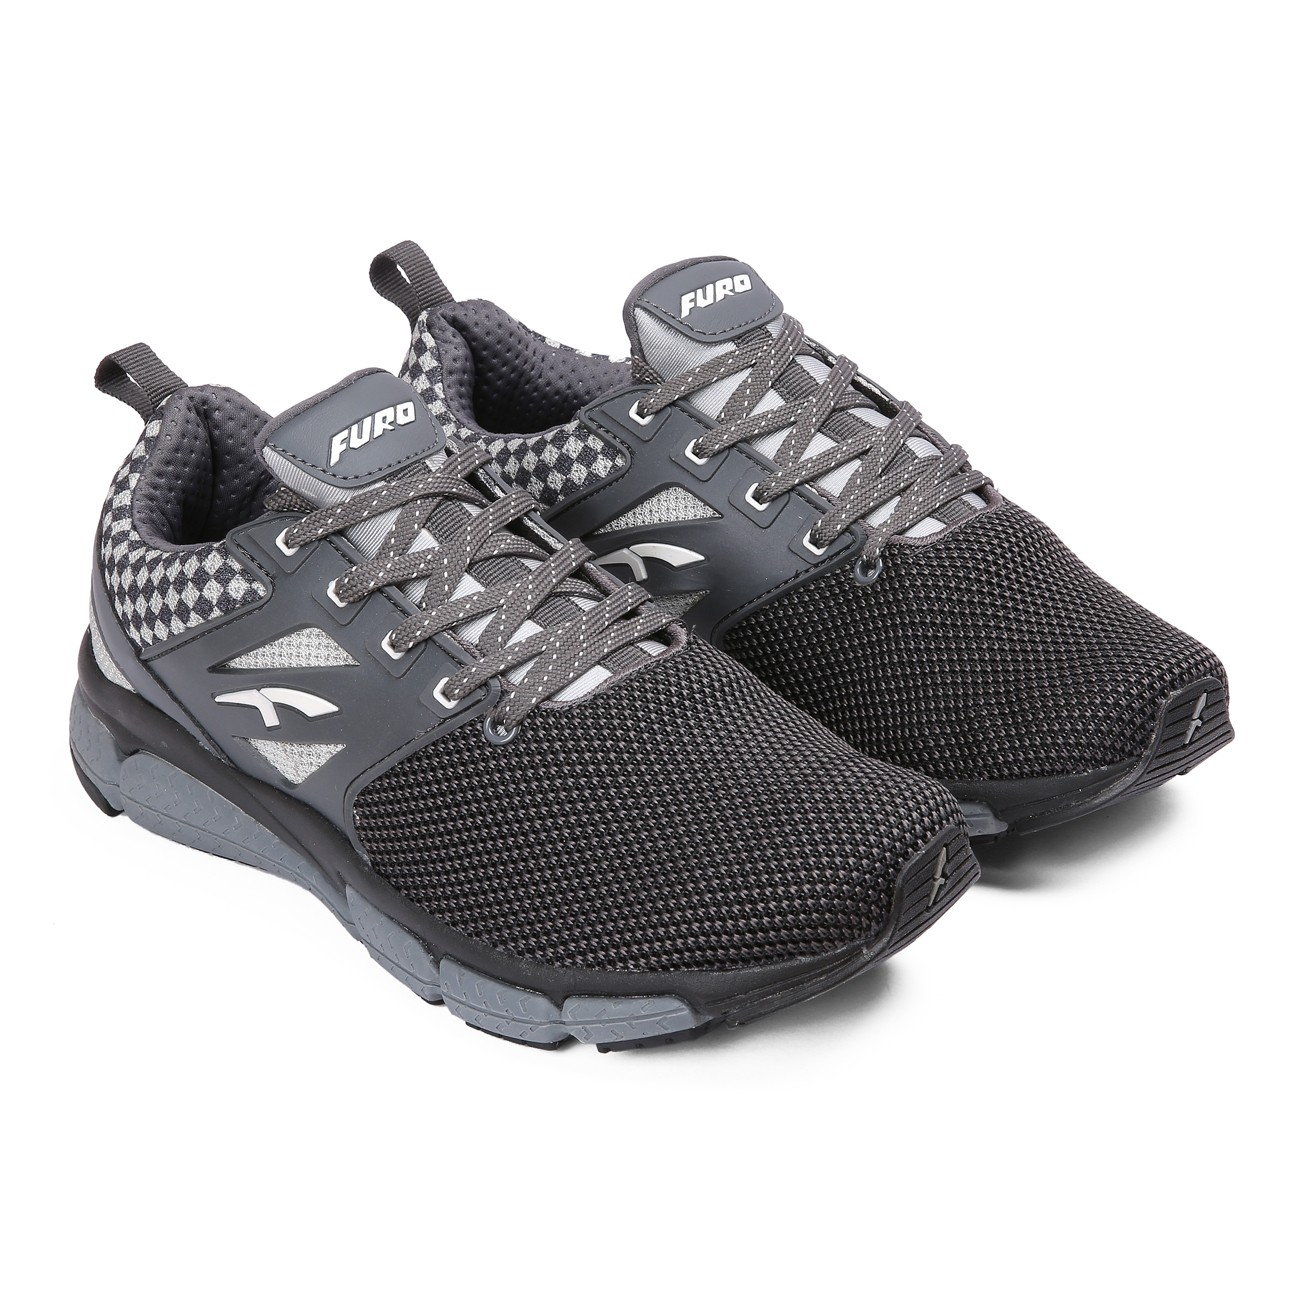 FURO R1017 | Running Shoes for Men